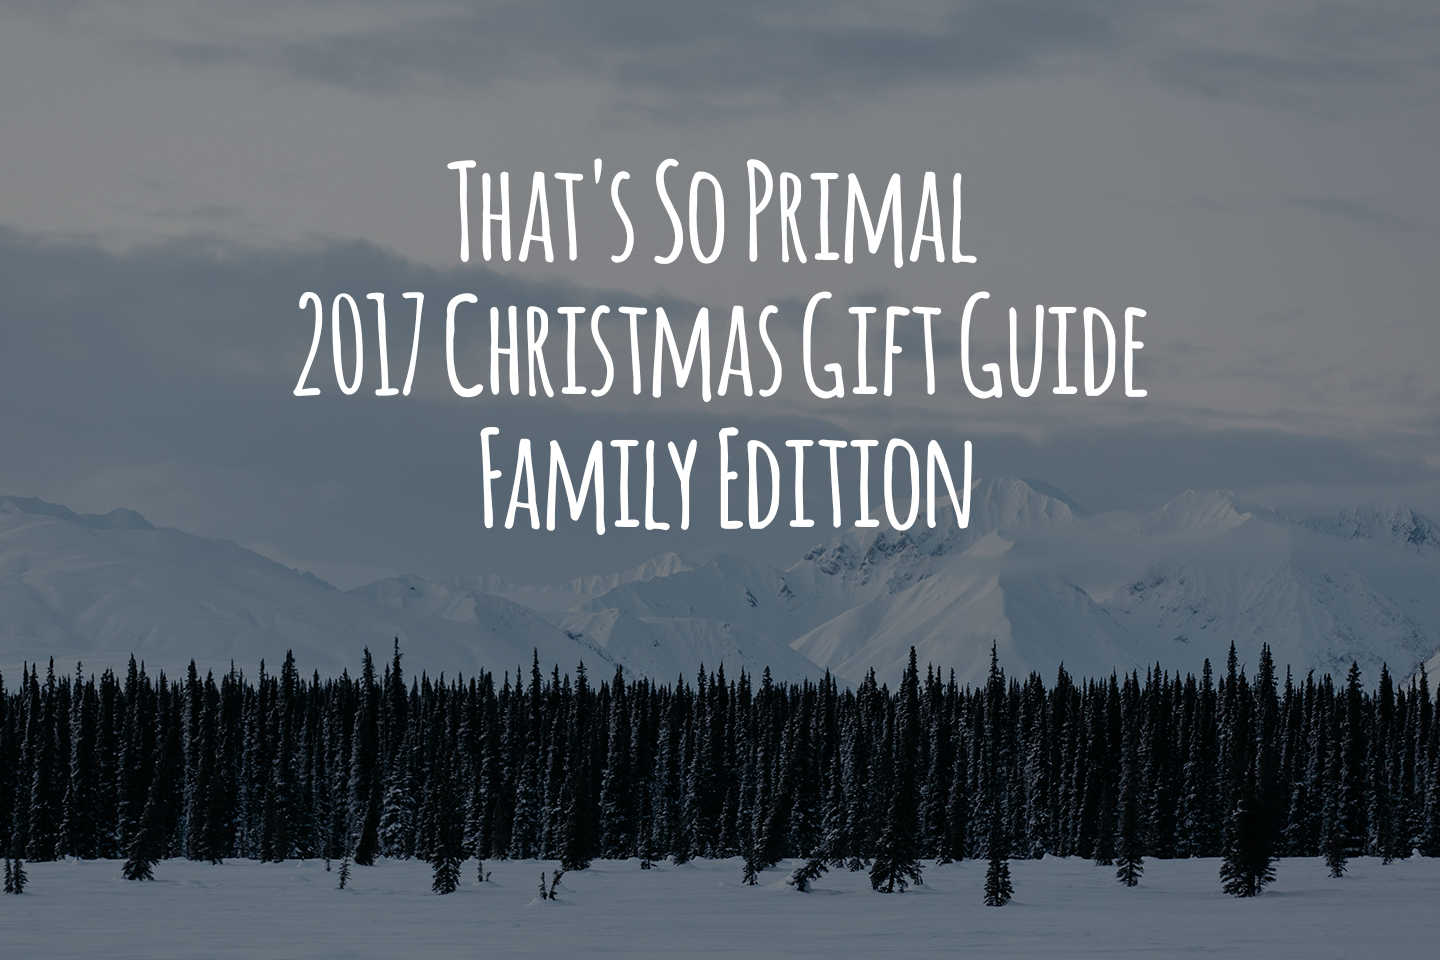 That's So Primal 2017 Christmas Gift Guide - Family Edition